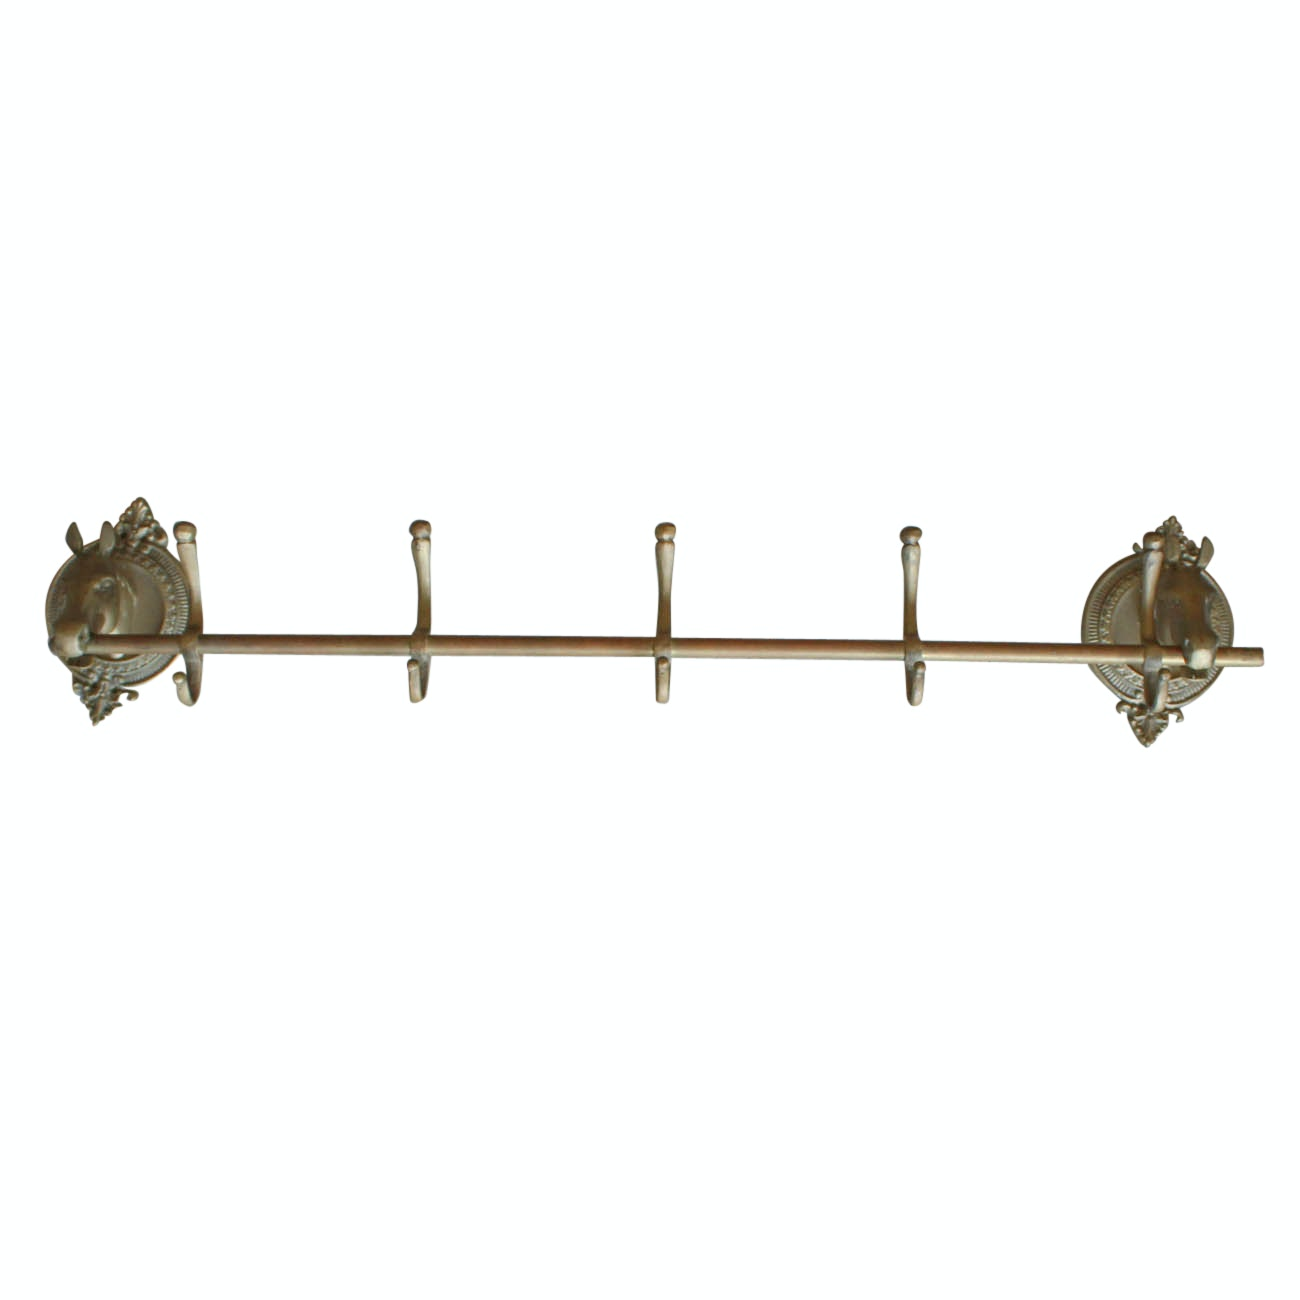 Brass Tone Iron Wall Hooks with Horse Heads